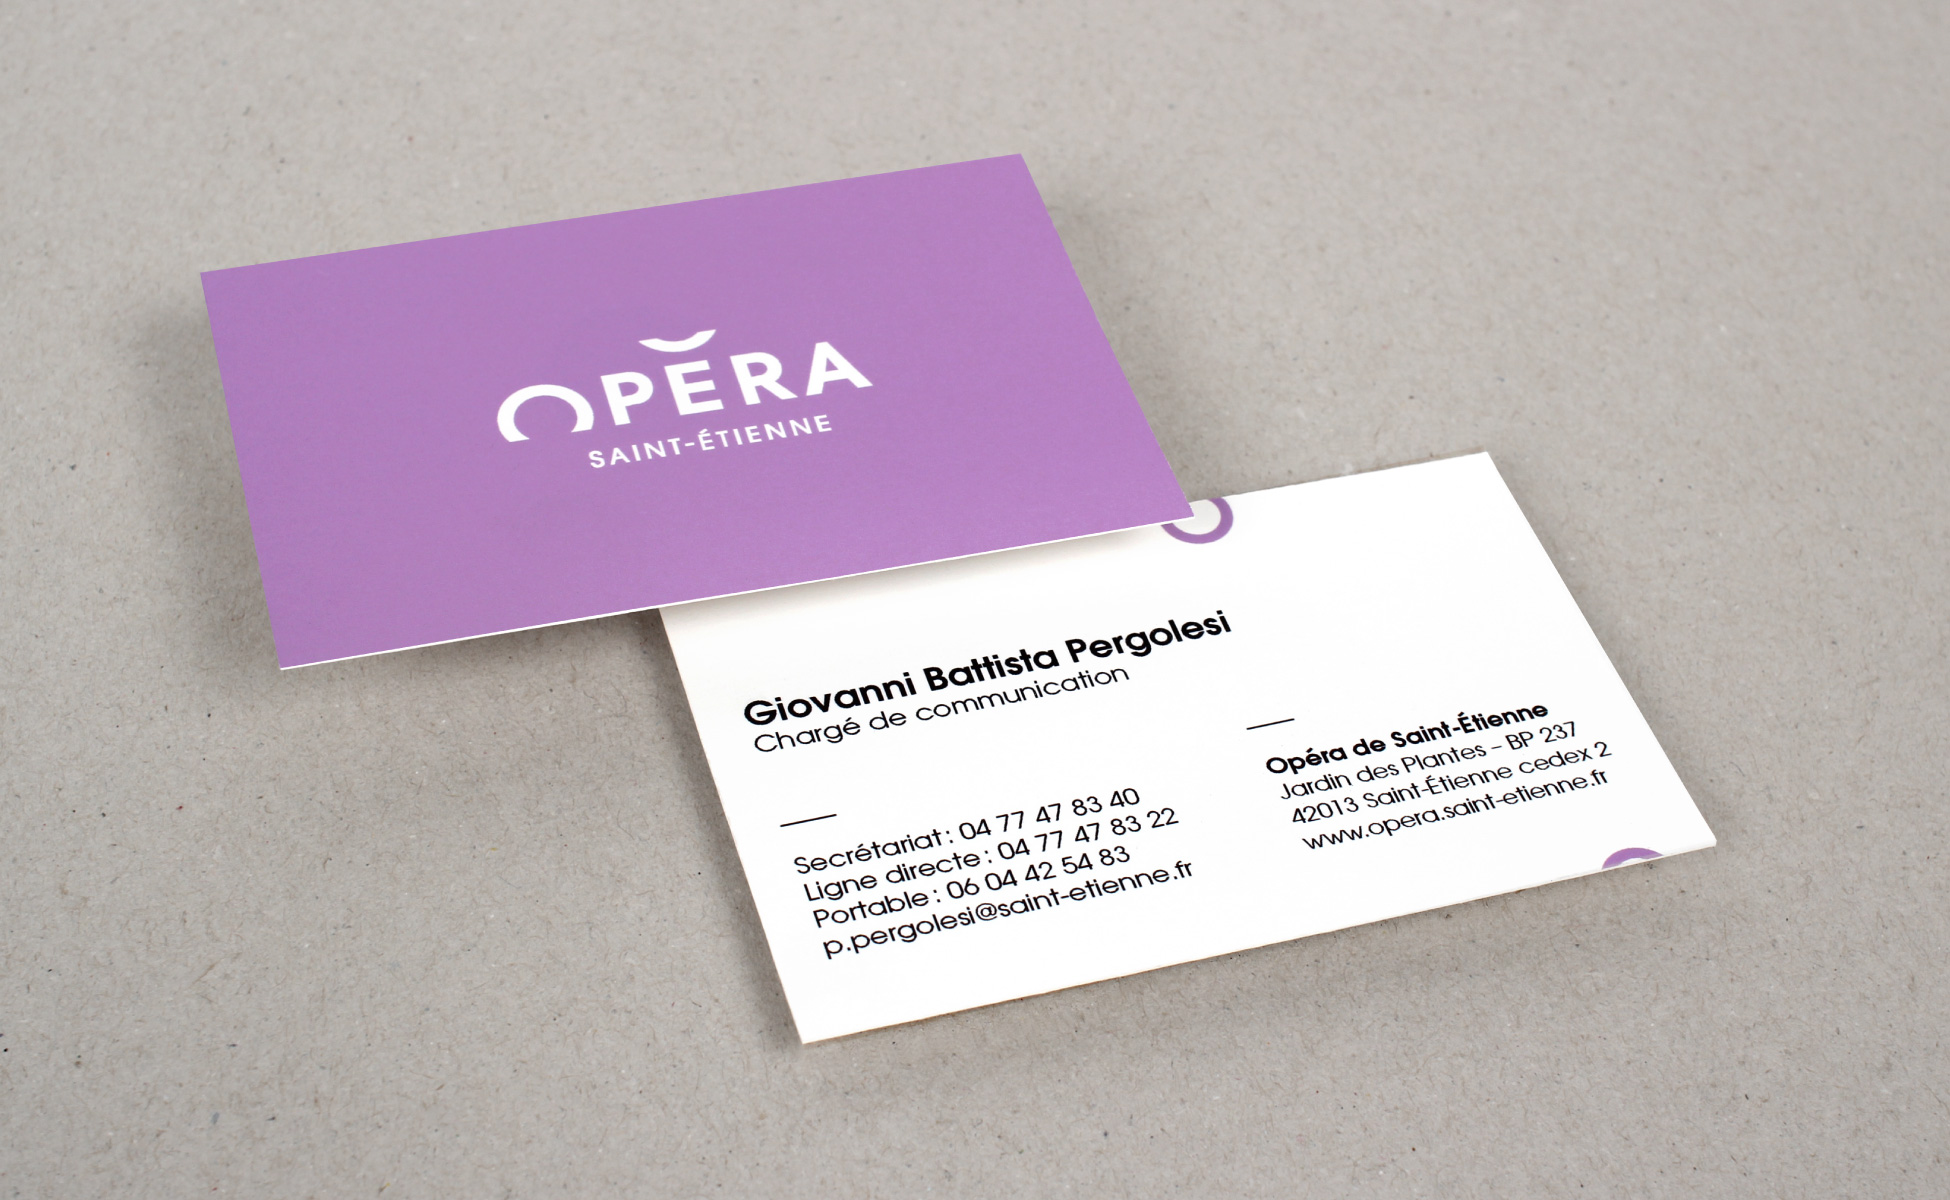 New branding of the Sainttienne Opera House